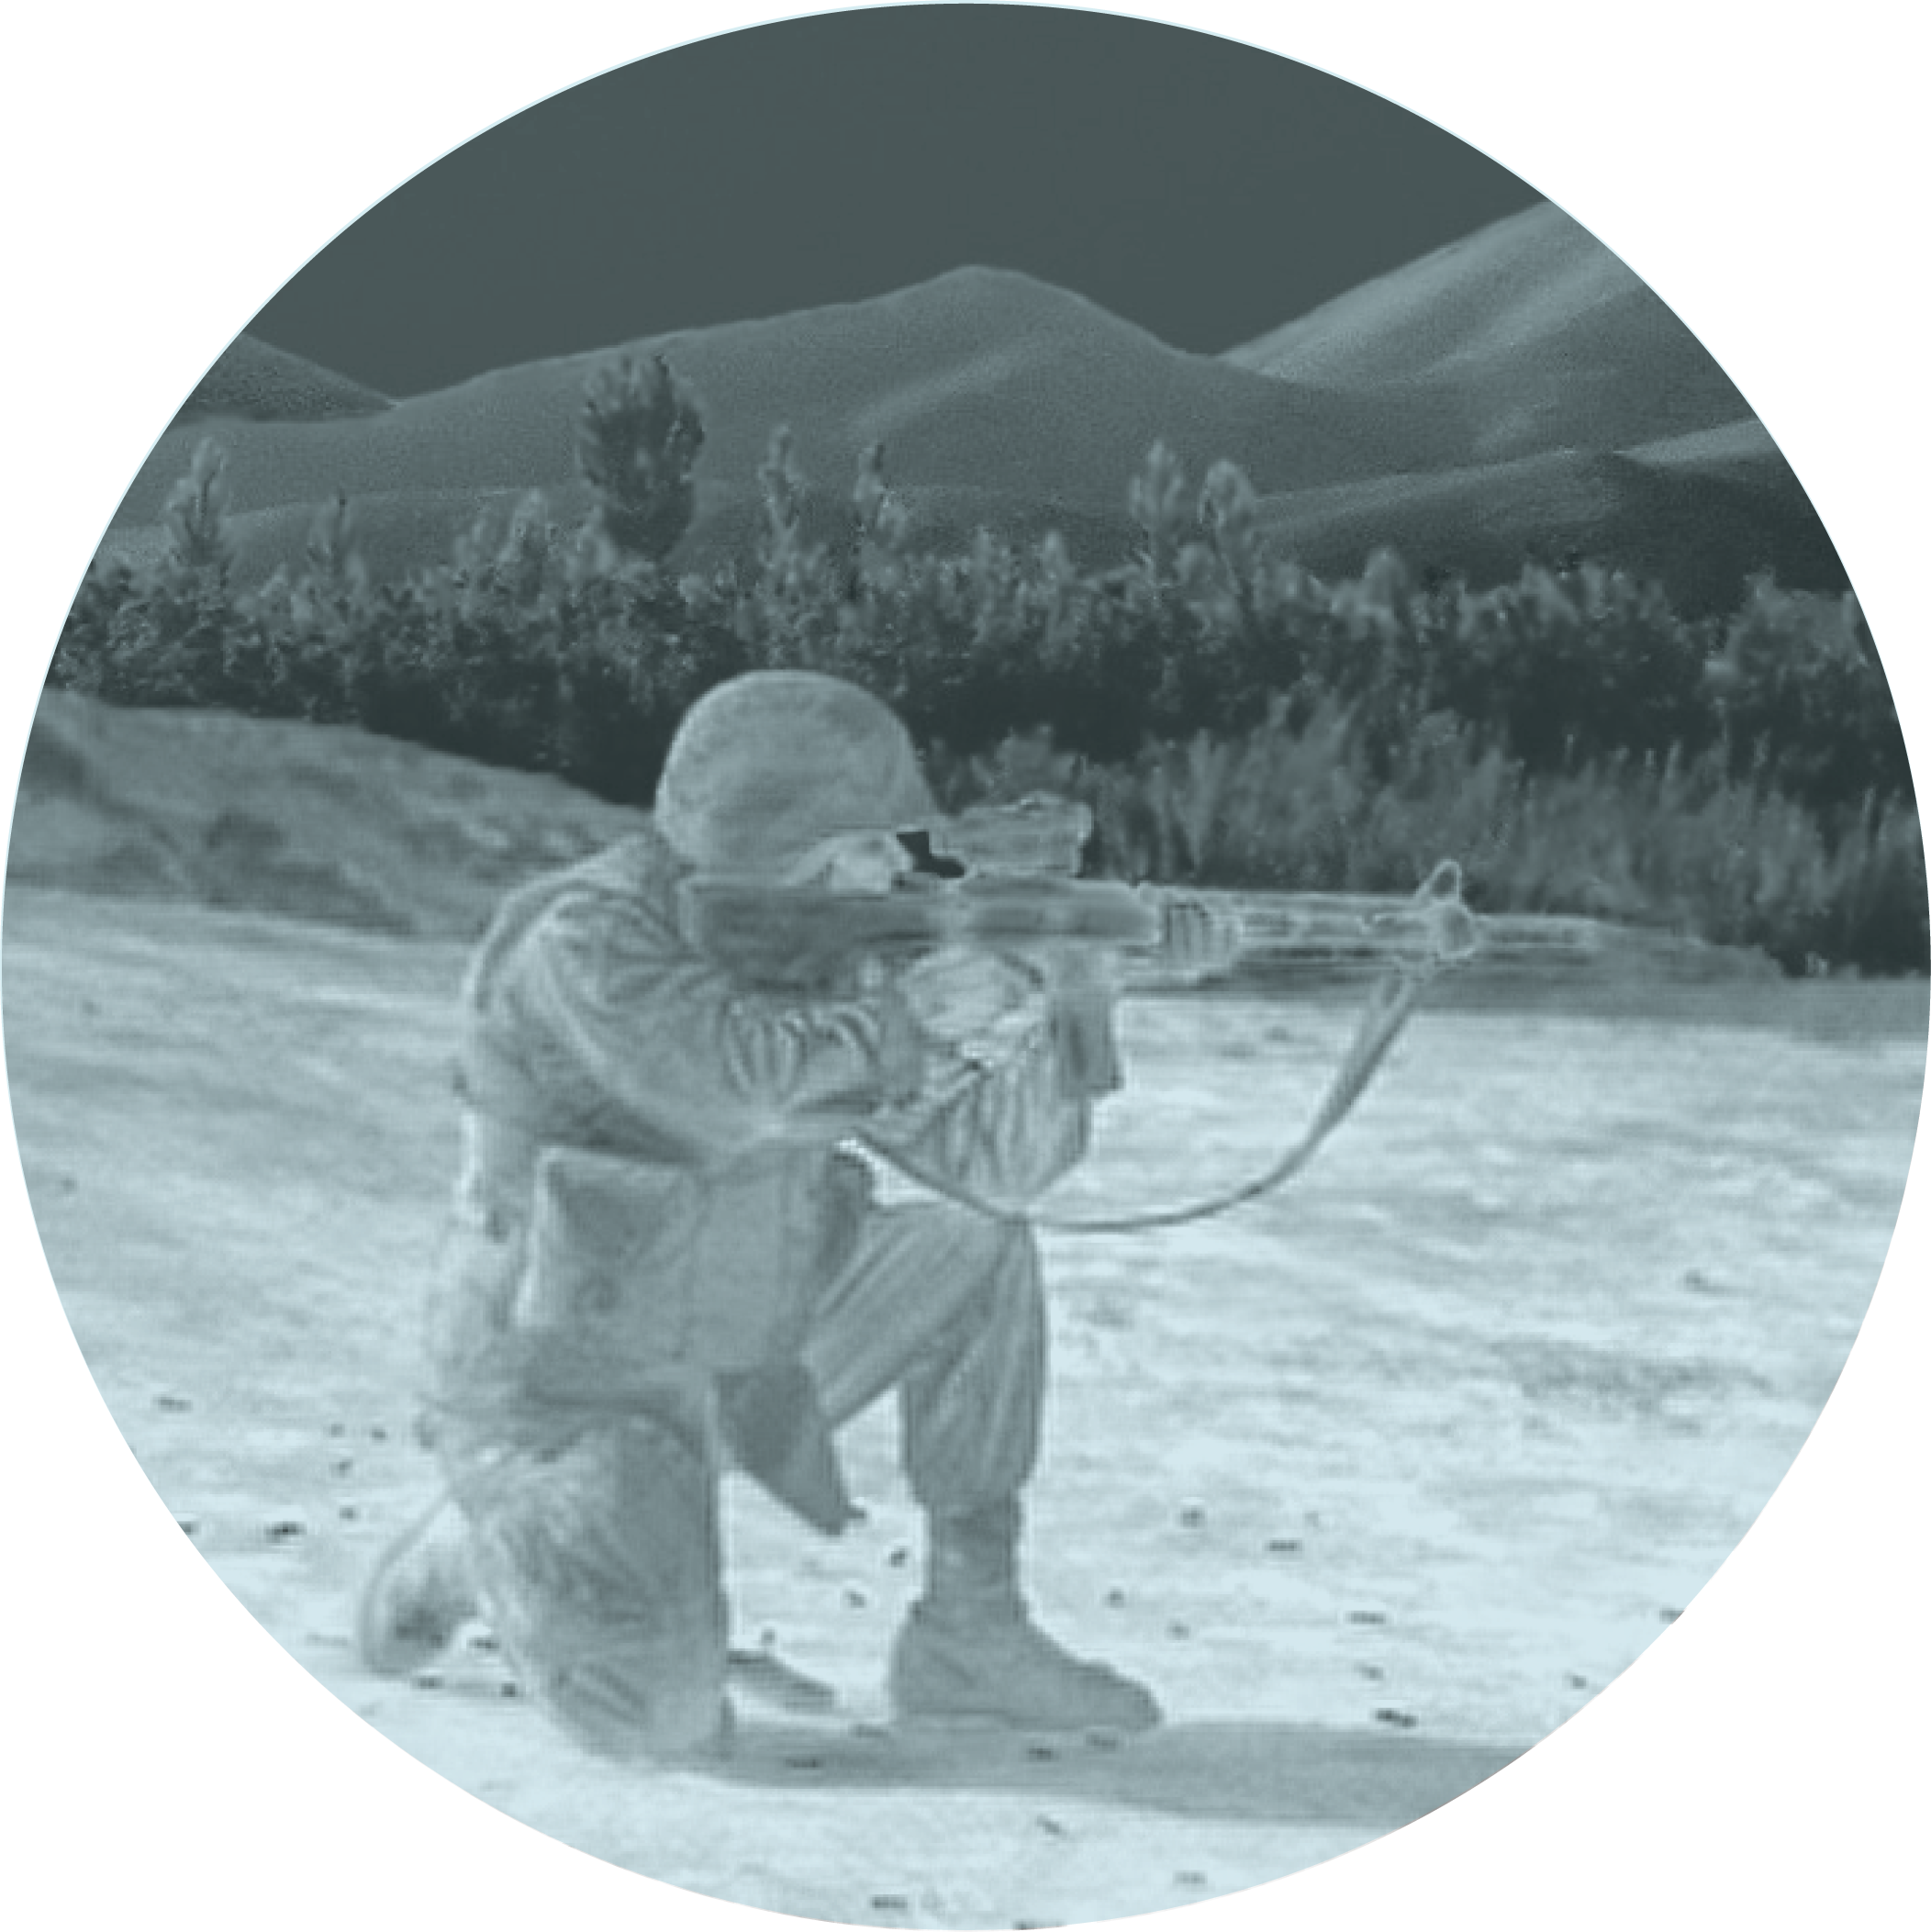 Image showing White Phosphor Overlay through goggle. Image is of a soldier with weapon.